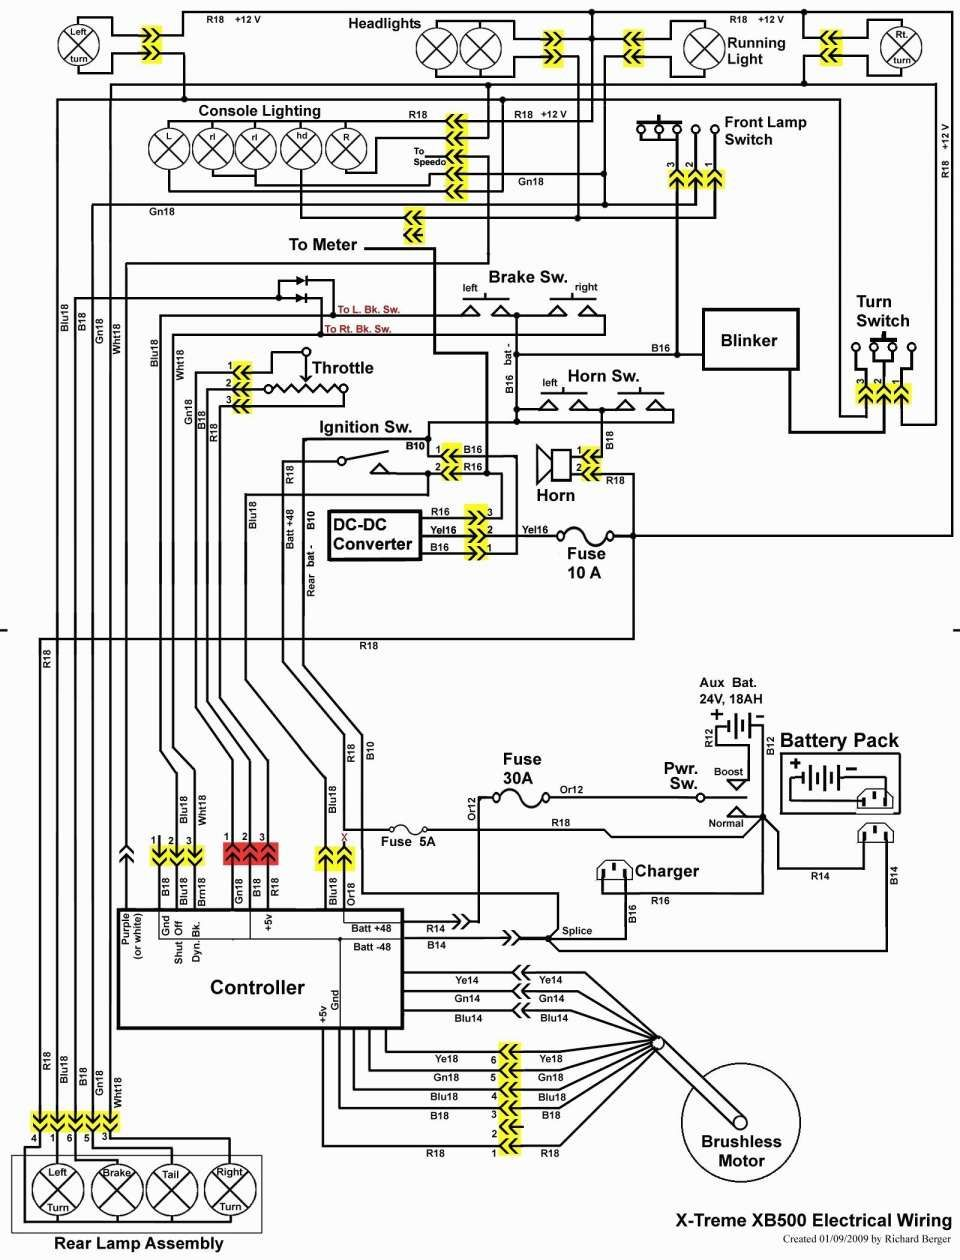 48v Electric Scooter Wiring Diagram And Unique Razor Electric Scooter Wiring Diagram Racemaster Razor Scooter Electric Scooter Design Electric Scooter